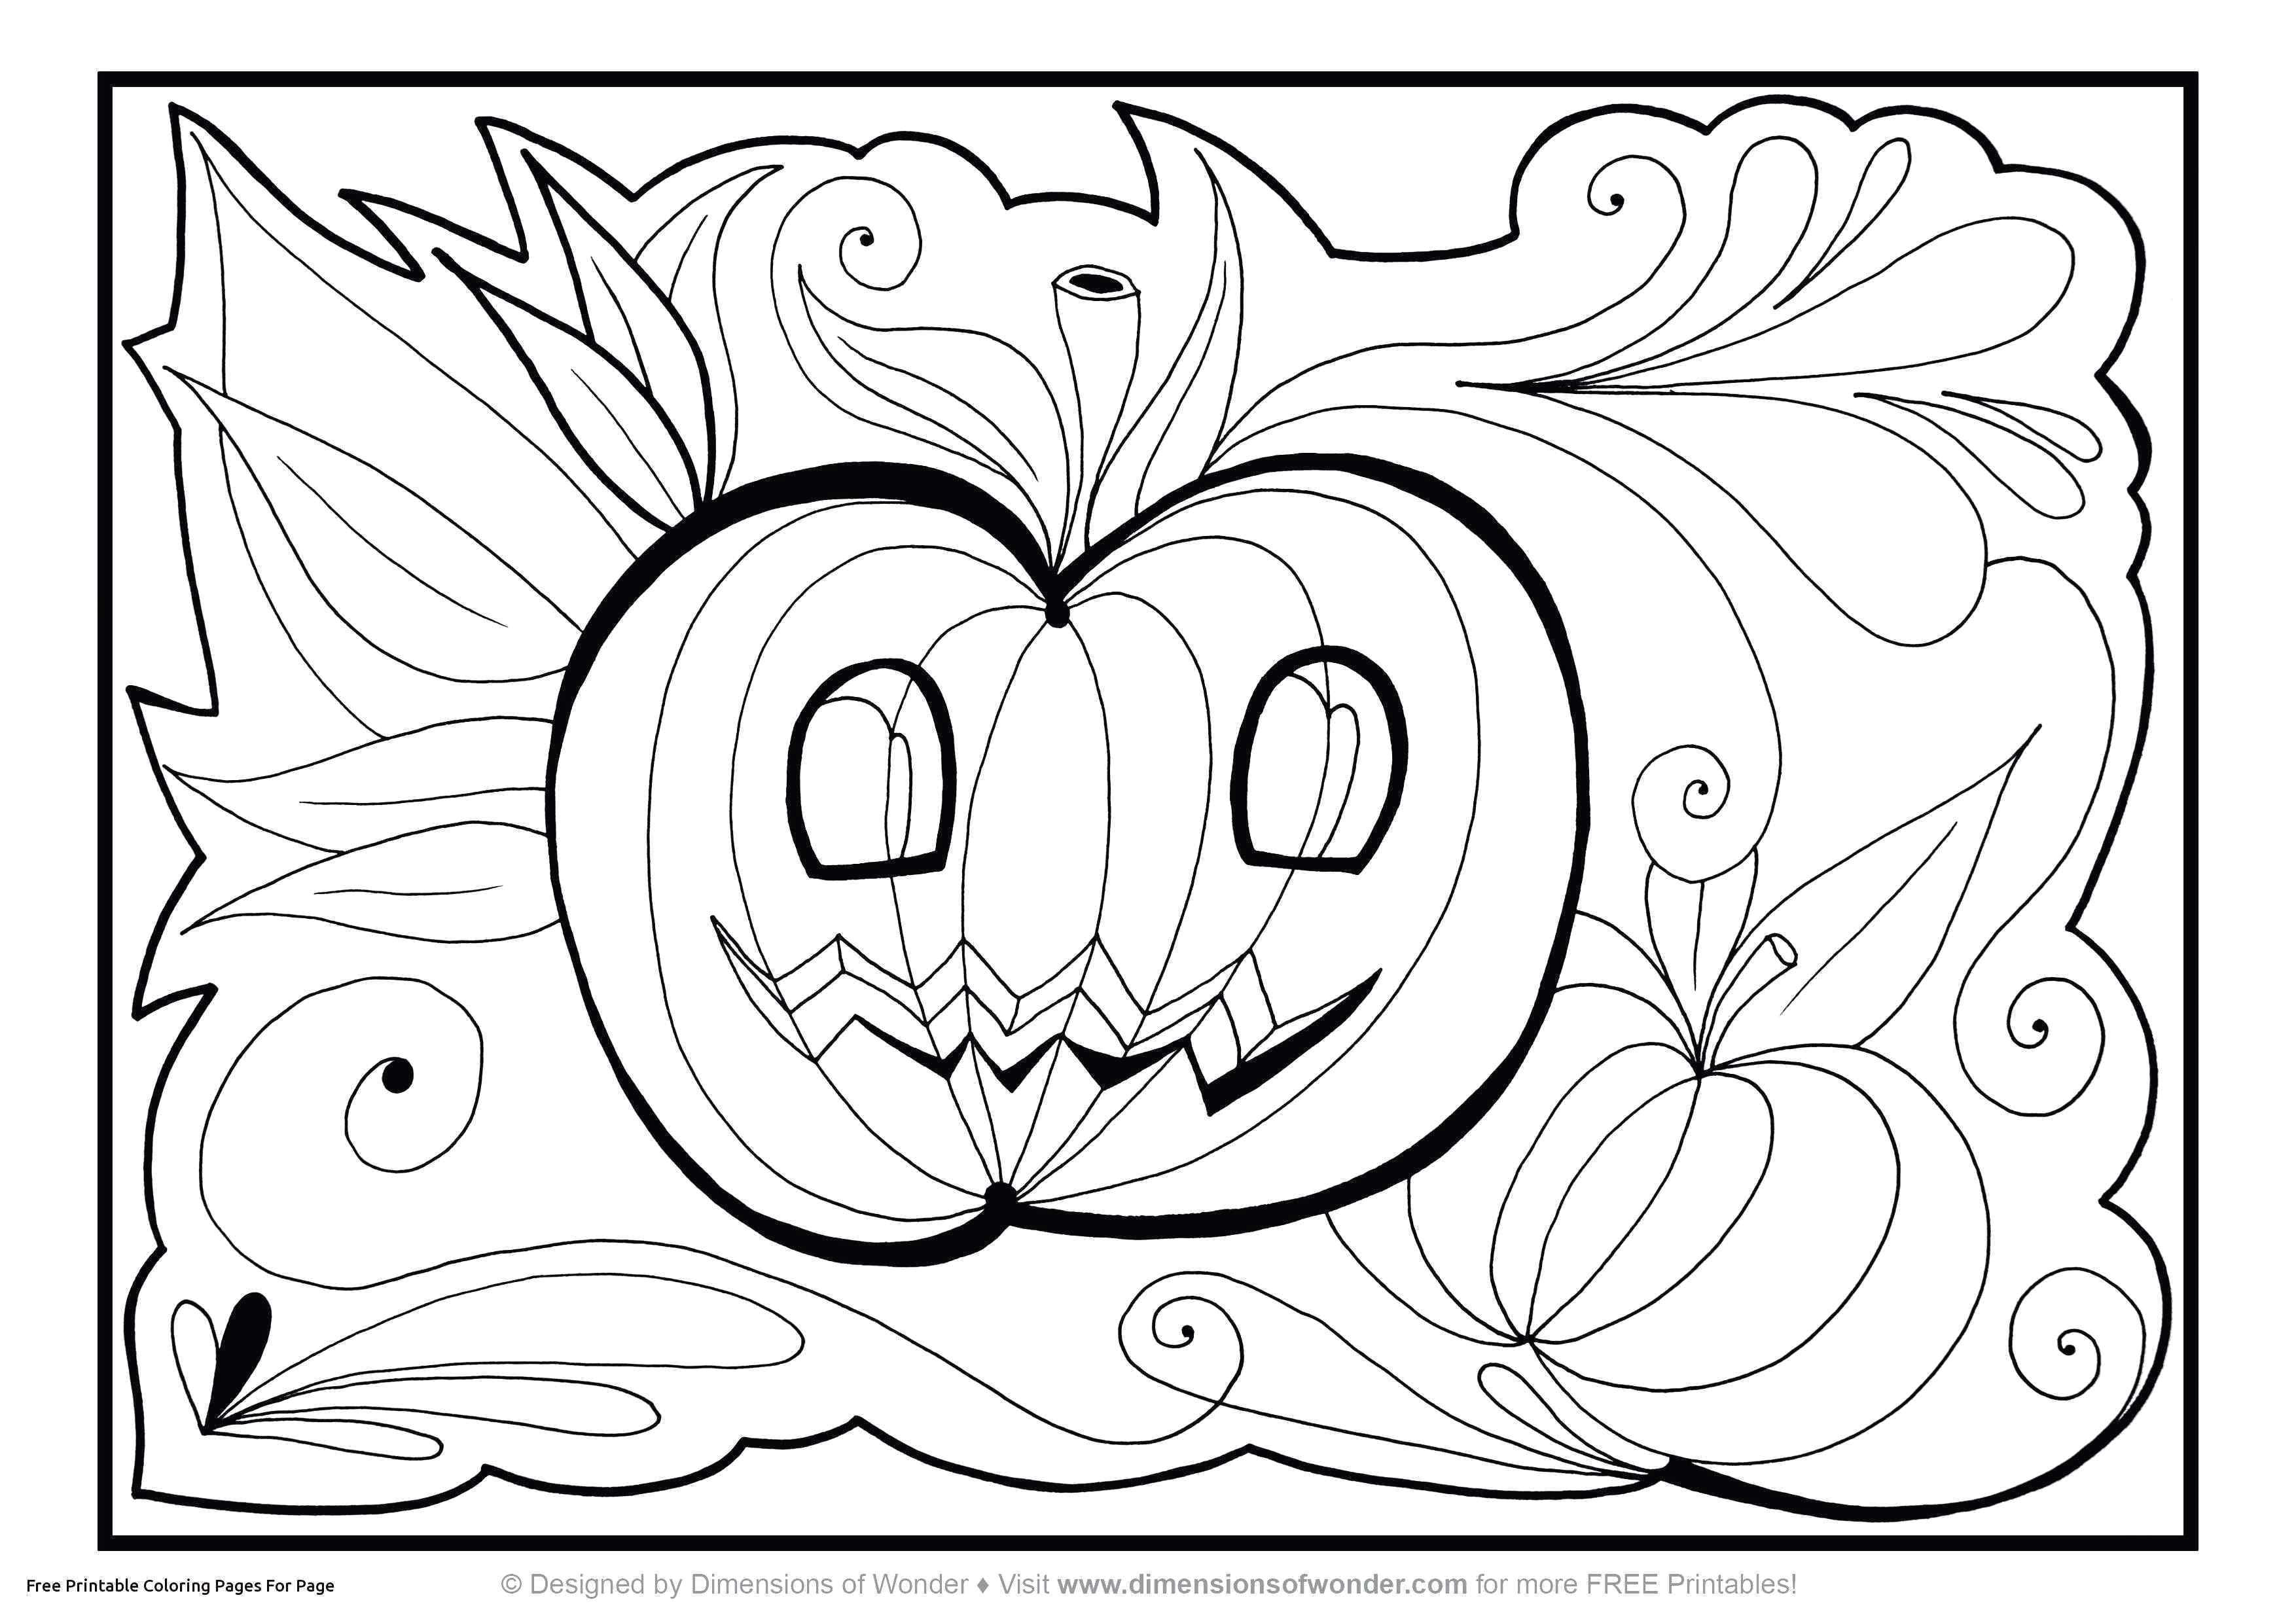 disney halloween coloring pages nice printable home coloring pages best color sheet 0d modokom